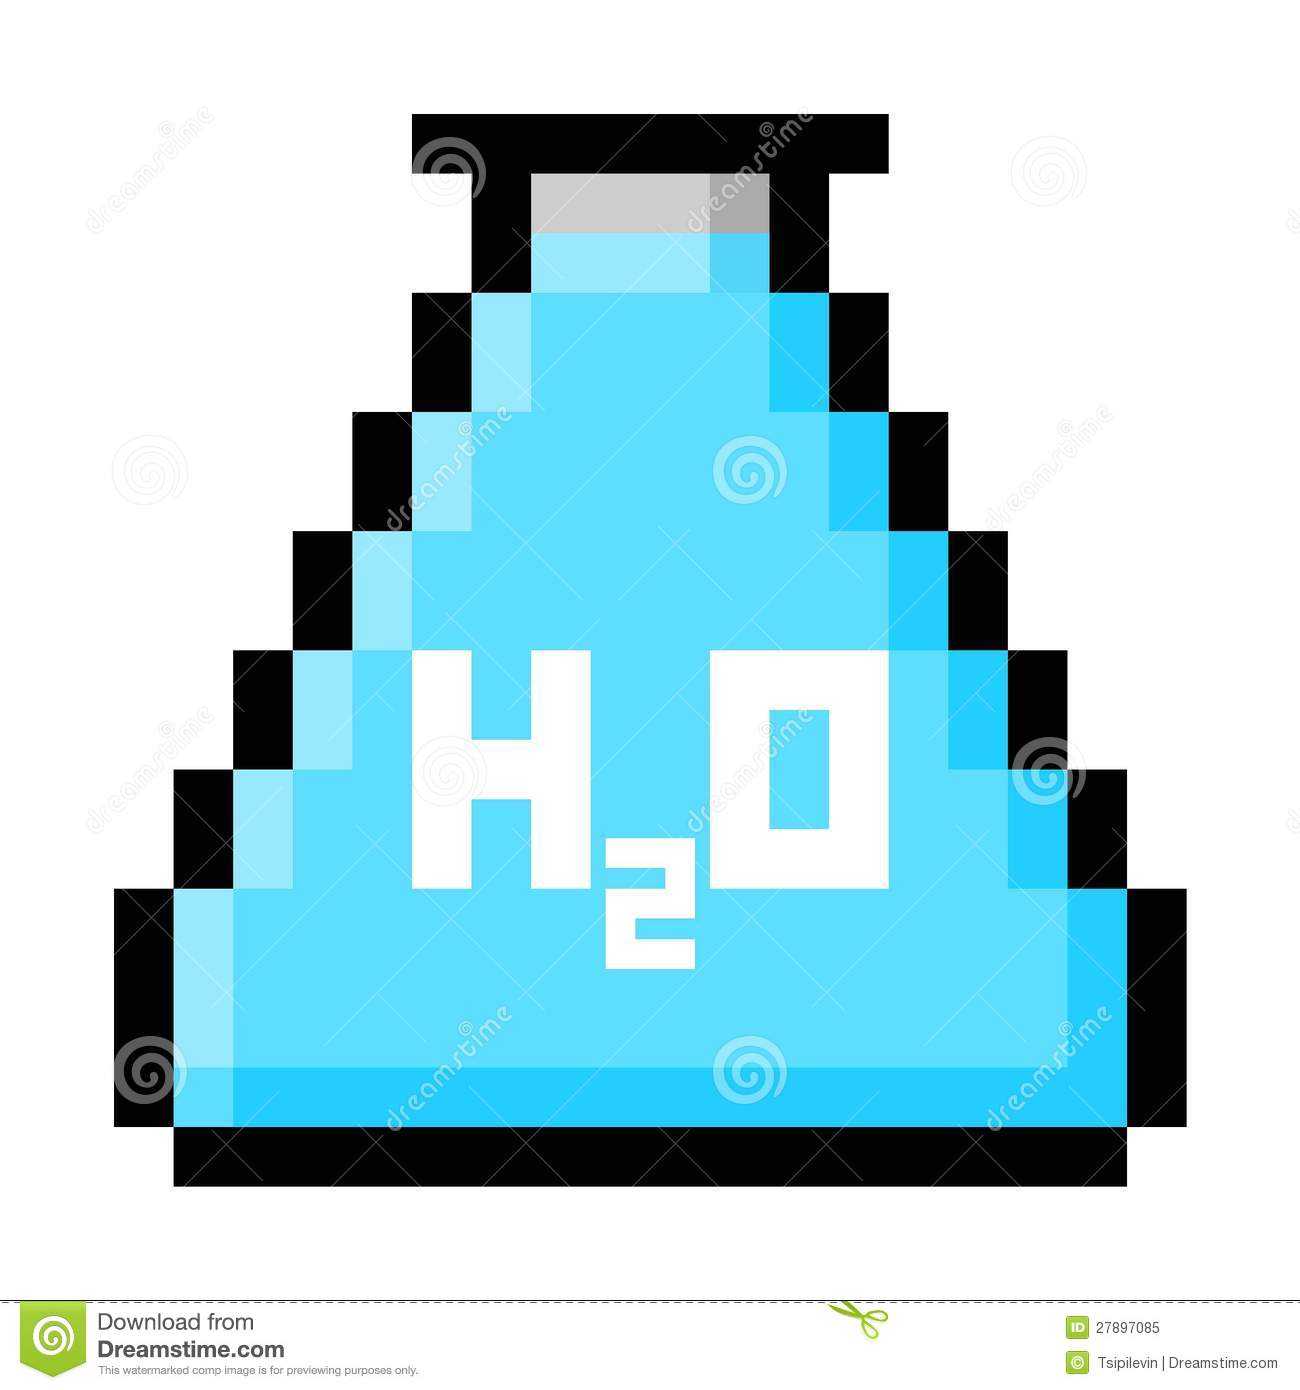 chemistry flask pixel art royalty free stock photo image water bottle clipart black and white water bottle clipart realistic